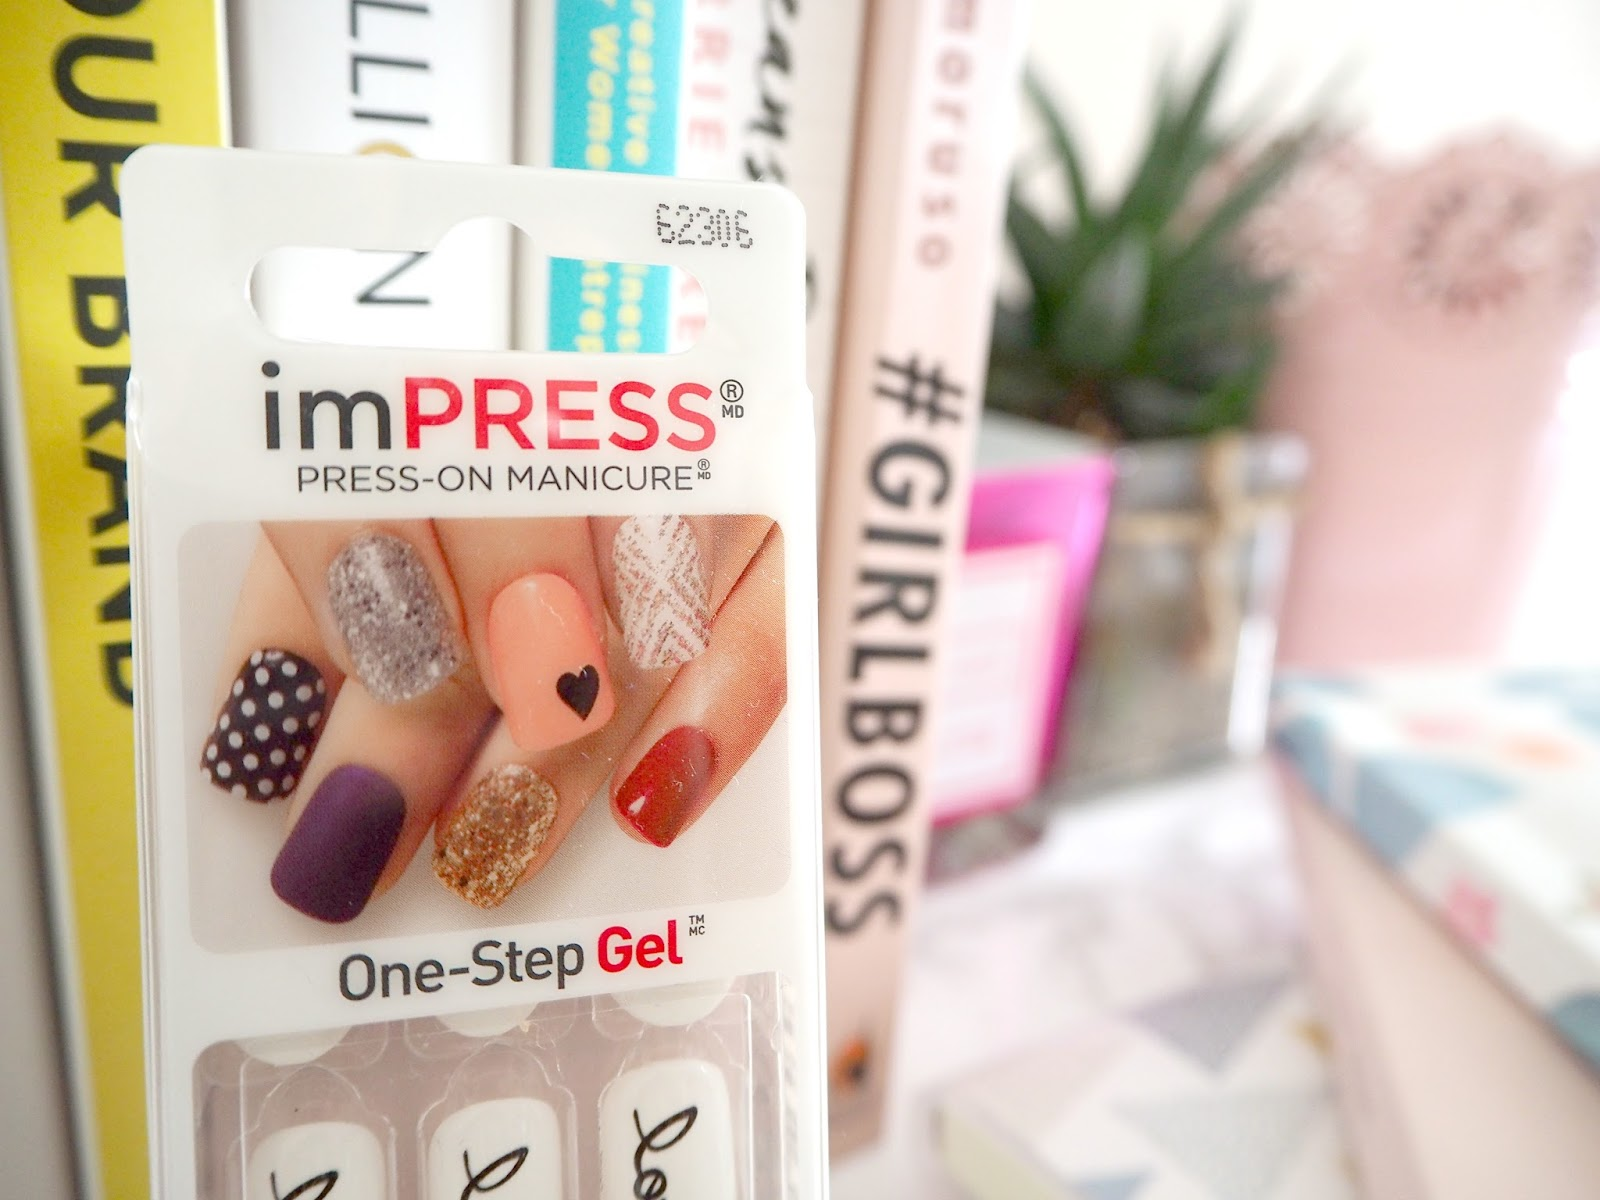 THE PERFECT NAILS FOR BUSY BEES   IMPRESS GEL NAILS   Love, Maisie   www.lovemaisie.com